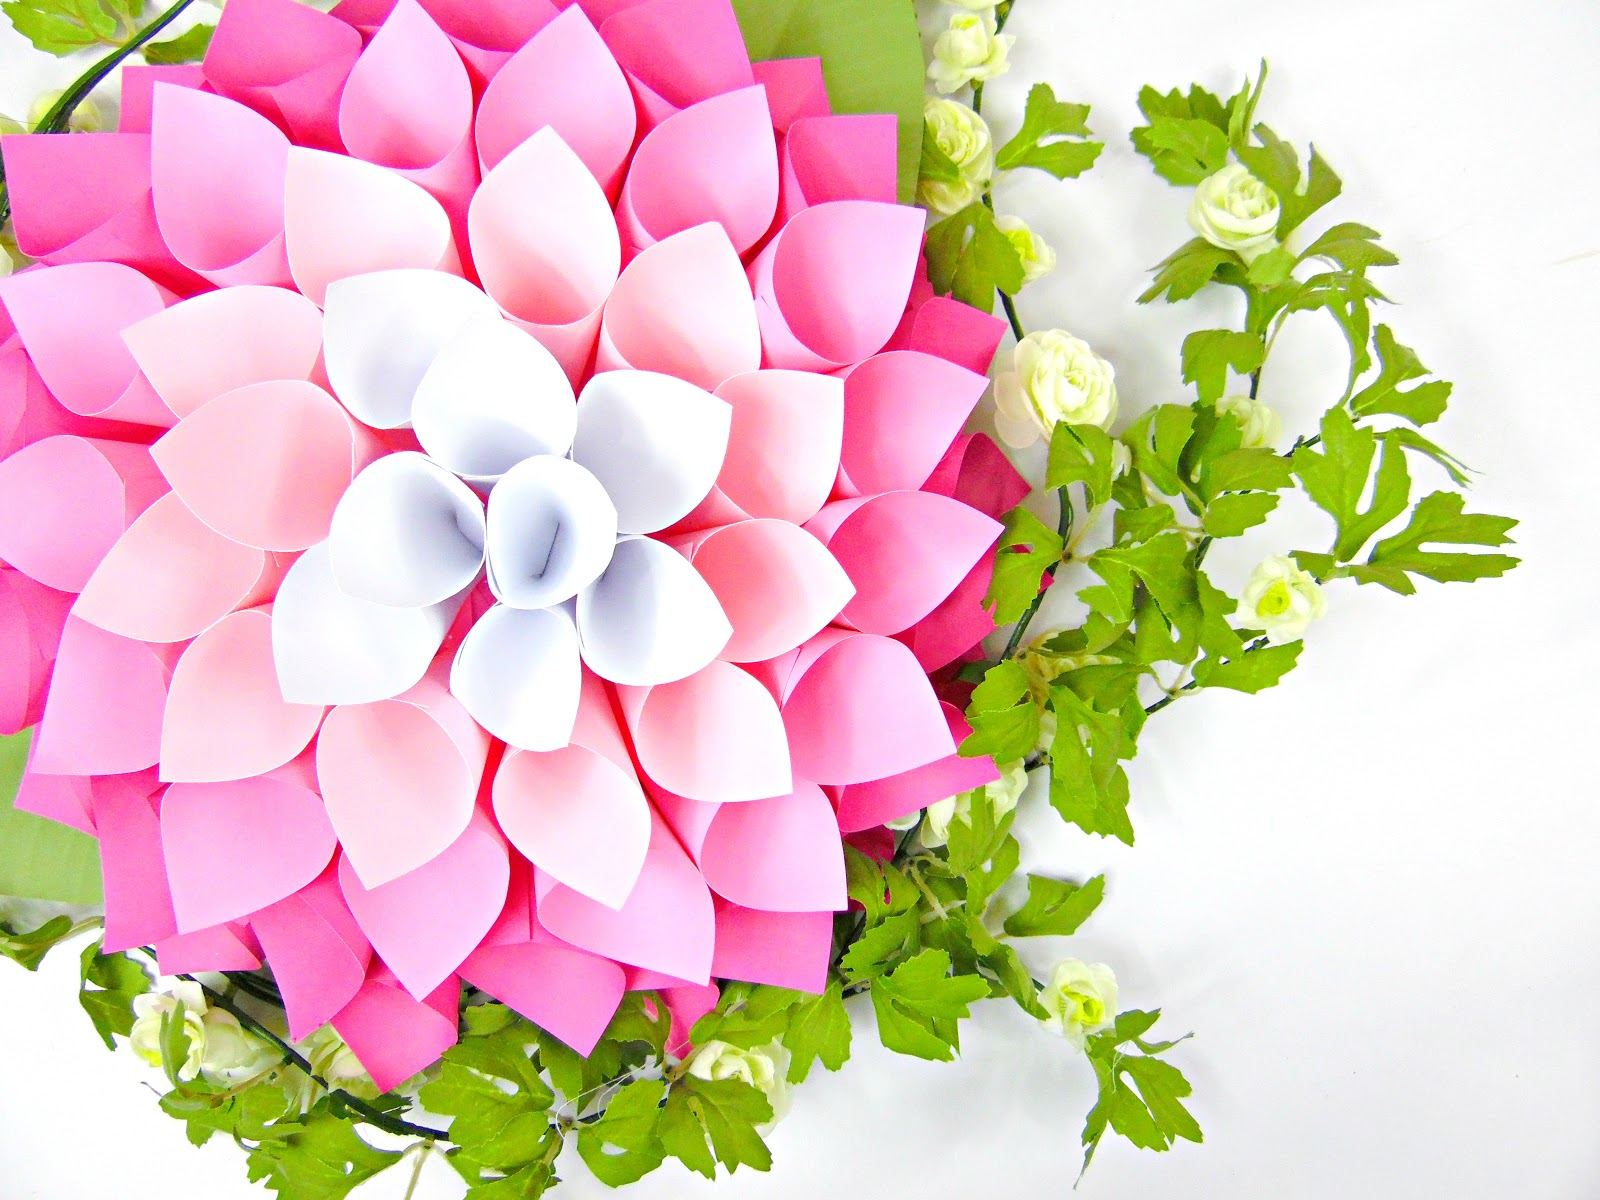 diy giant dahlia paper flowers  how to make large paper